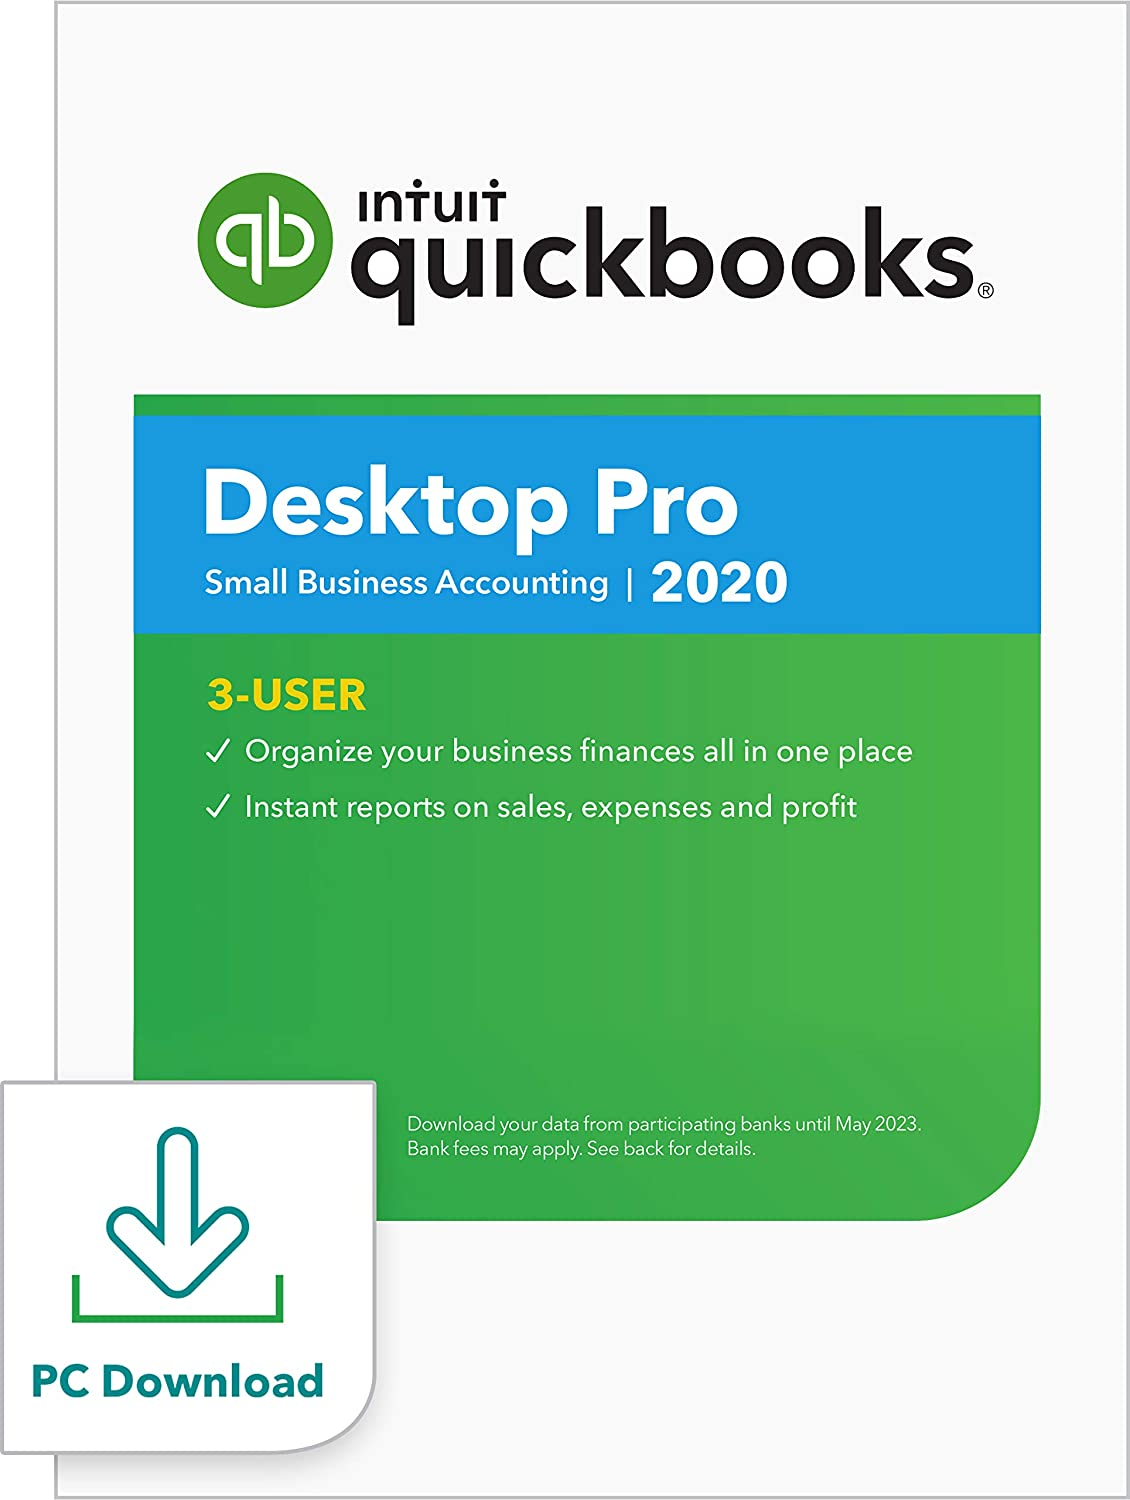 QuickBooks DesktopPro 2020Accounting Software for Small Business - 3 User [PC Download]